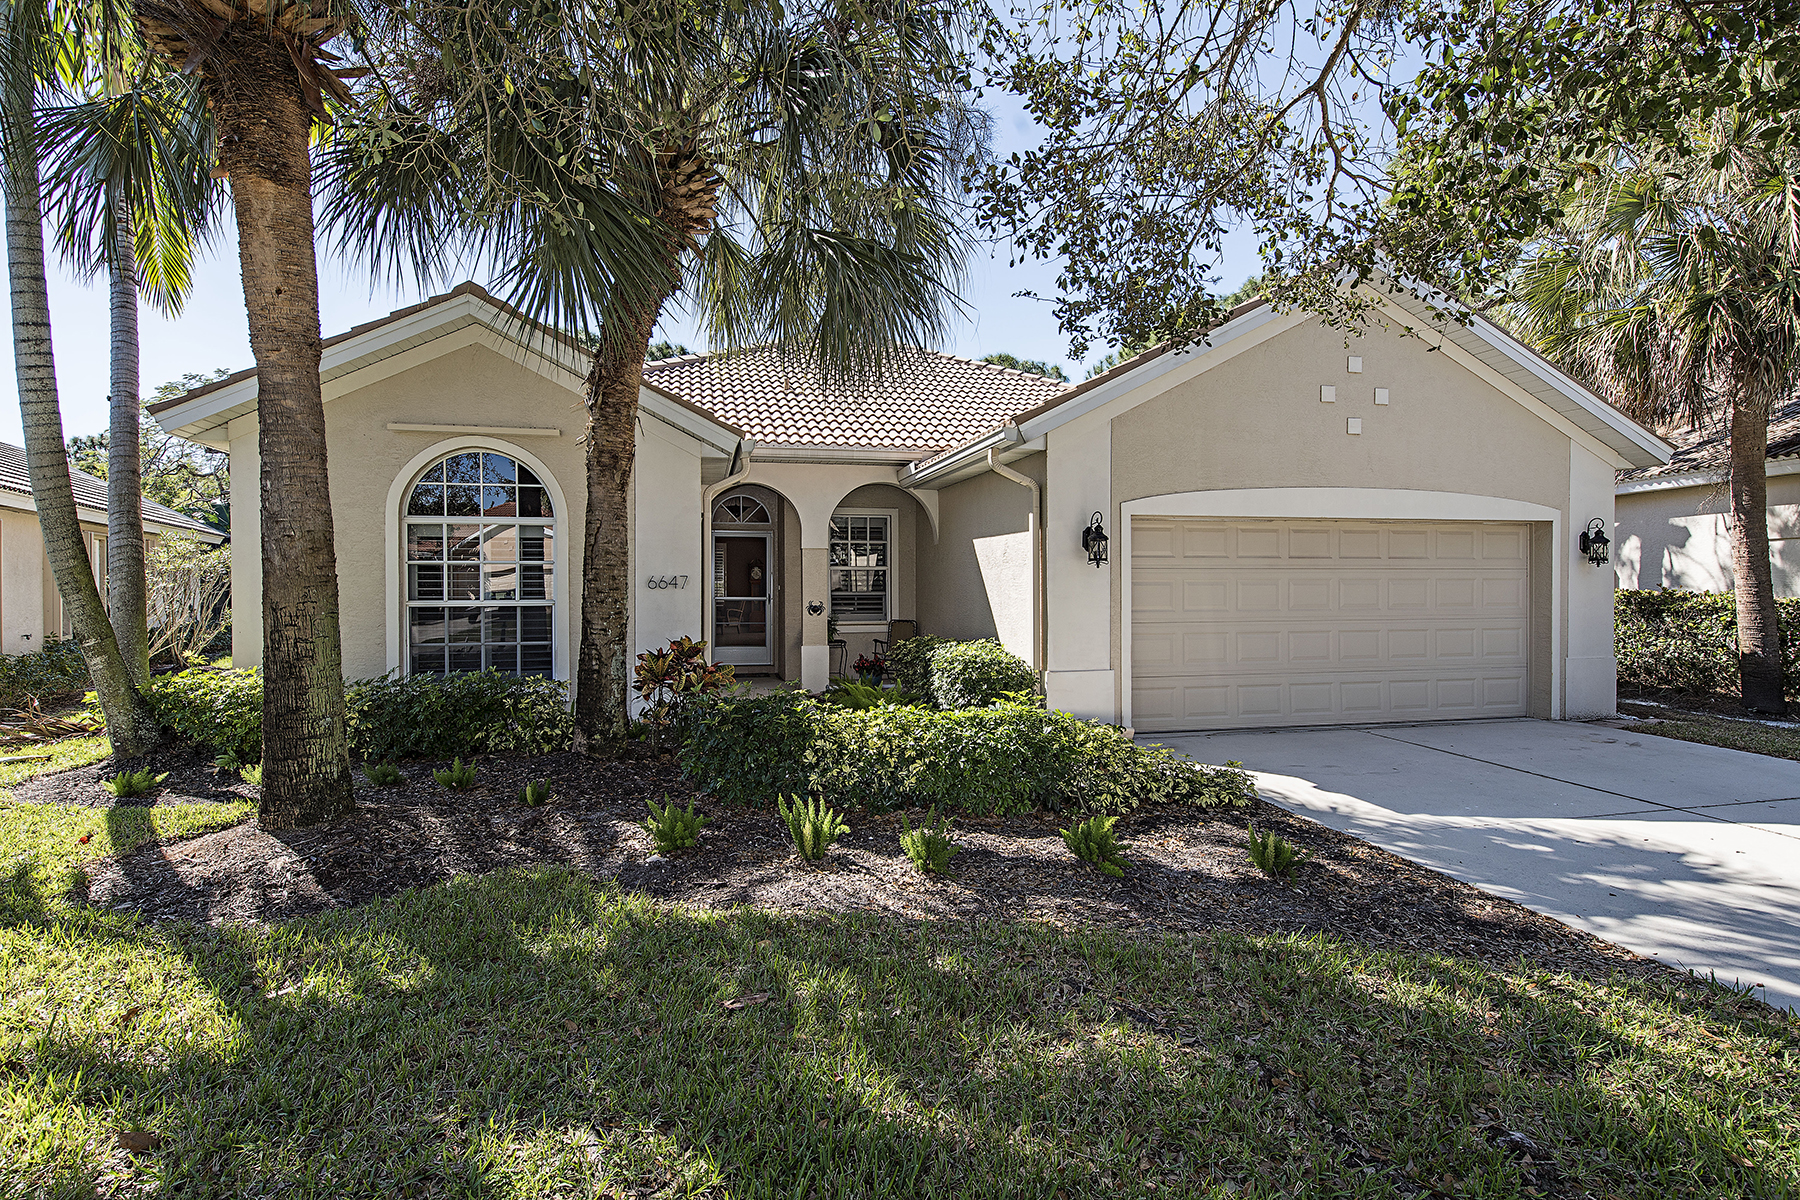 Property For Sale at 6647 Mangrove Way , Naples, FL 34109